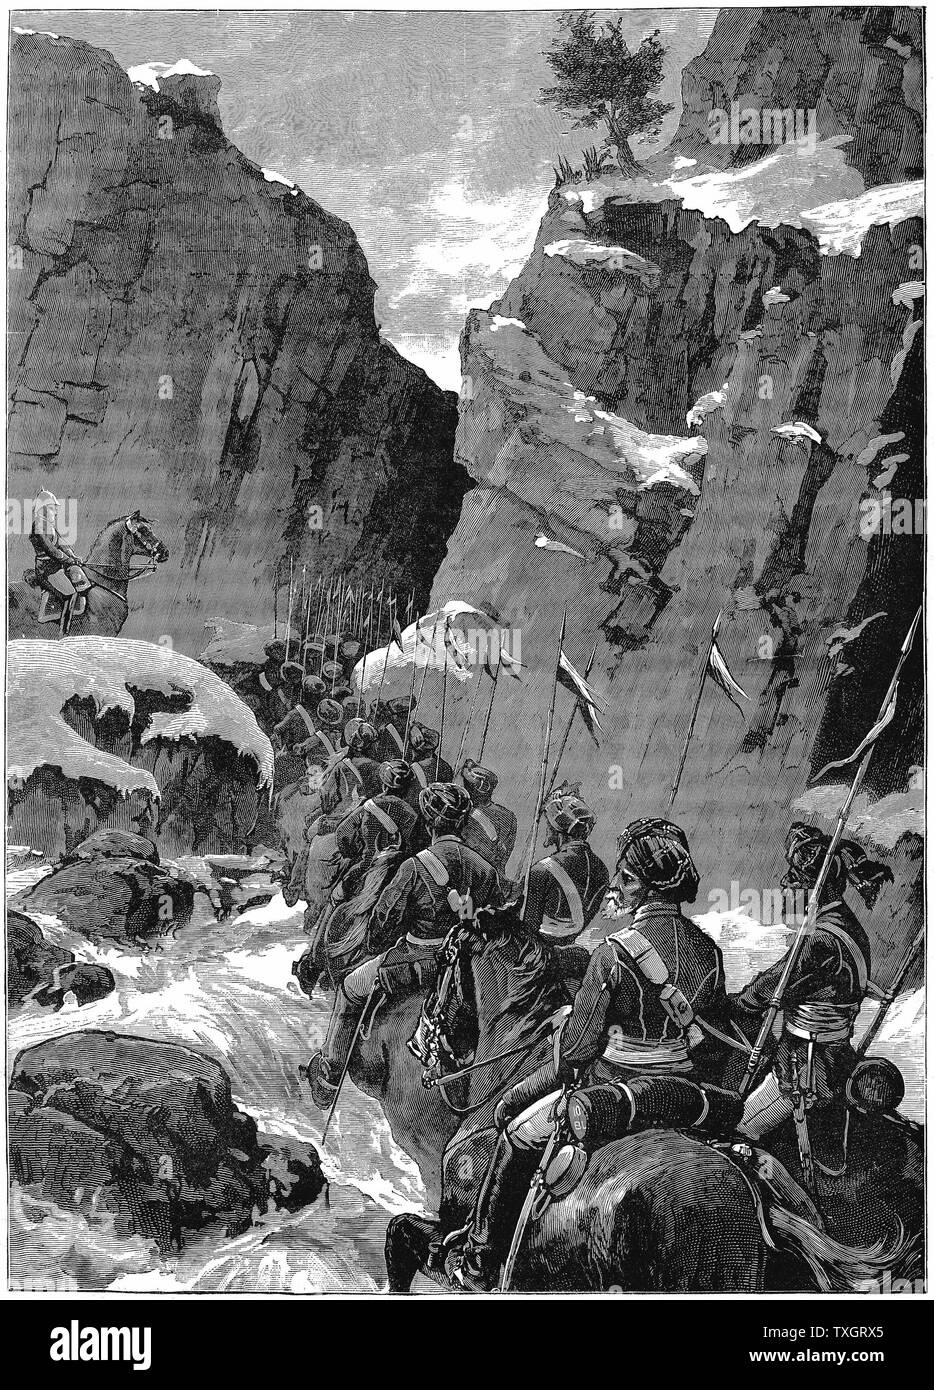 Second Anglo-Afghan War (1878-1880) 10th Bengal Lancers negotiating the Jugdulluk Pass supervised by a British officer December 1879 Wood engraving Stock Photo